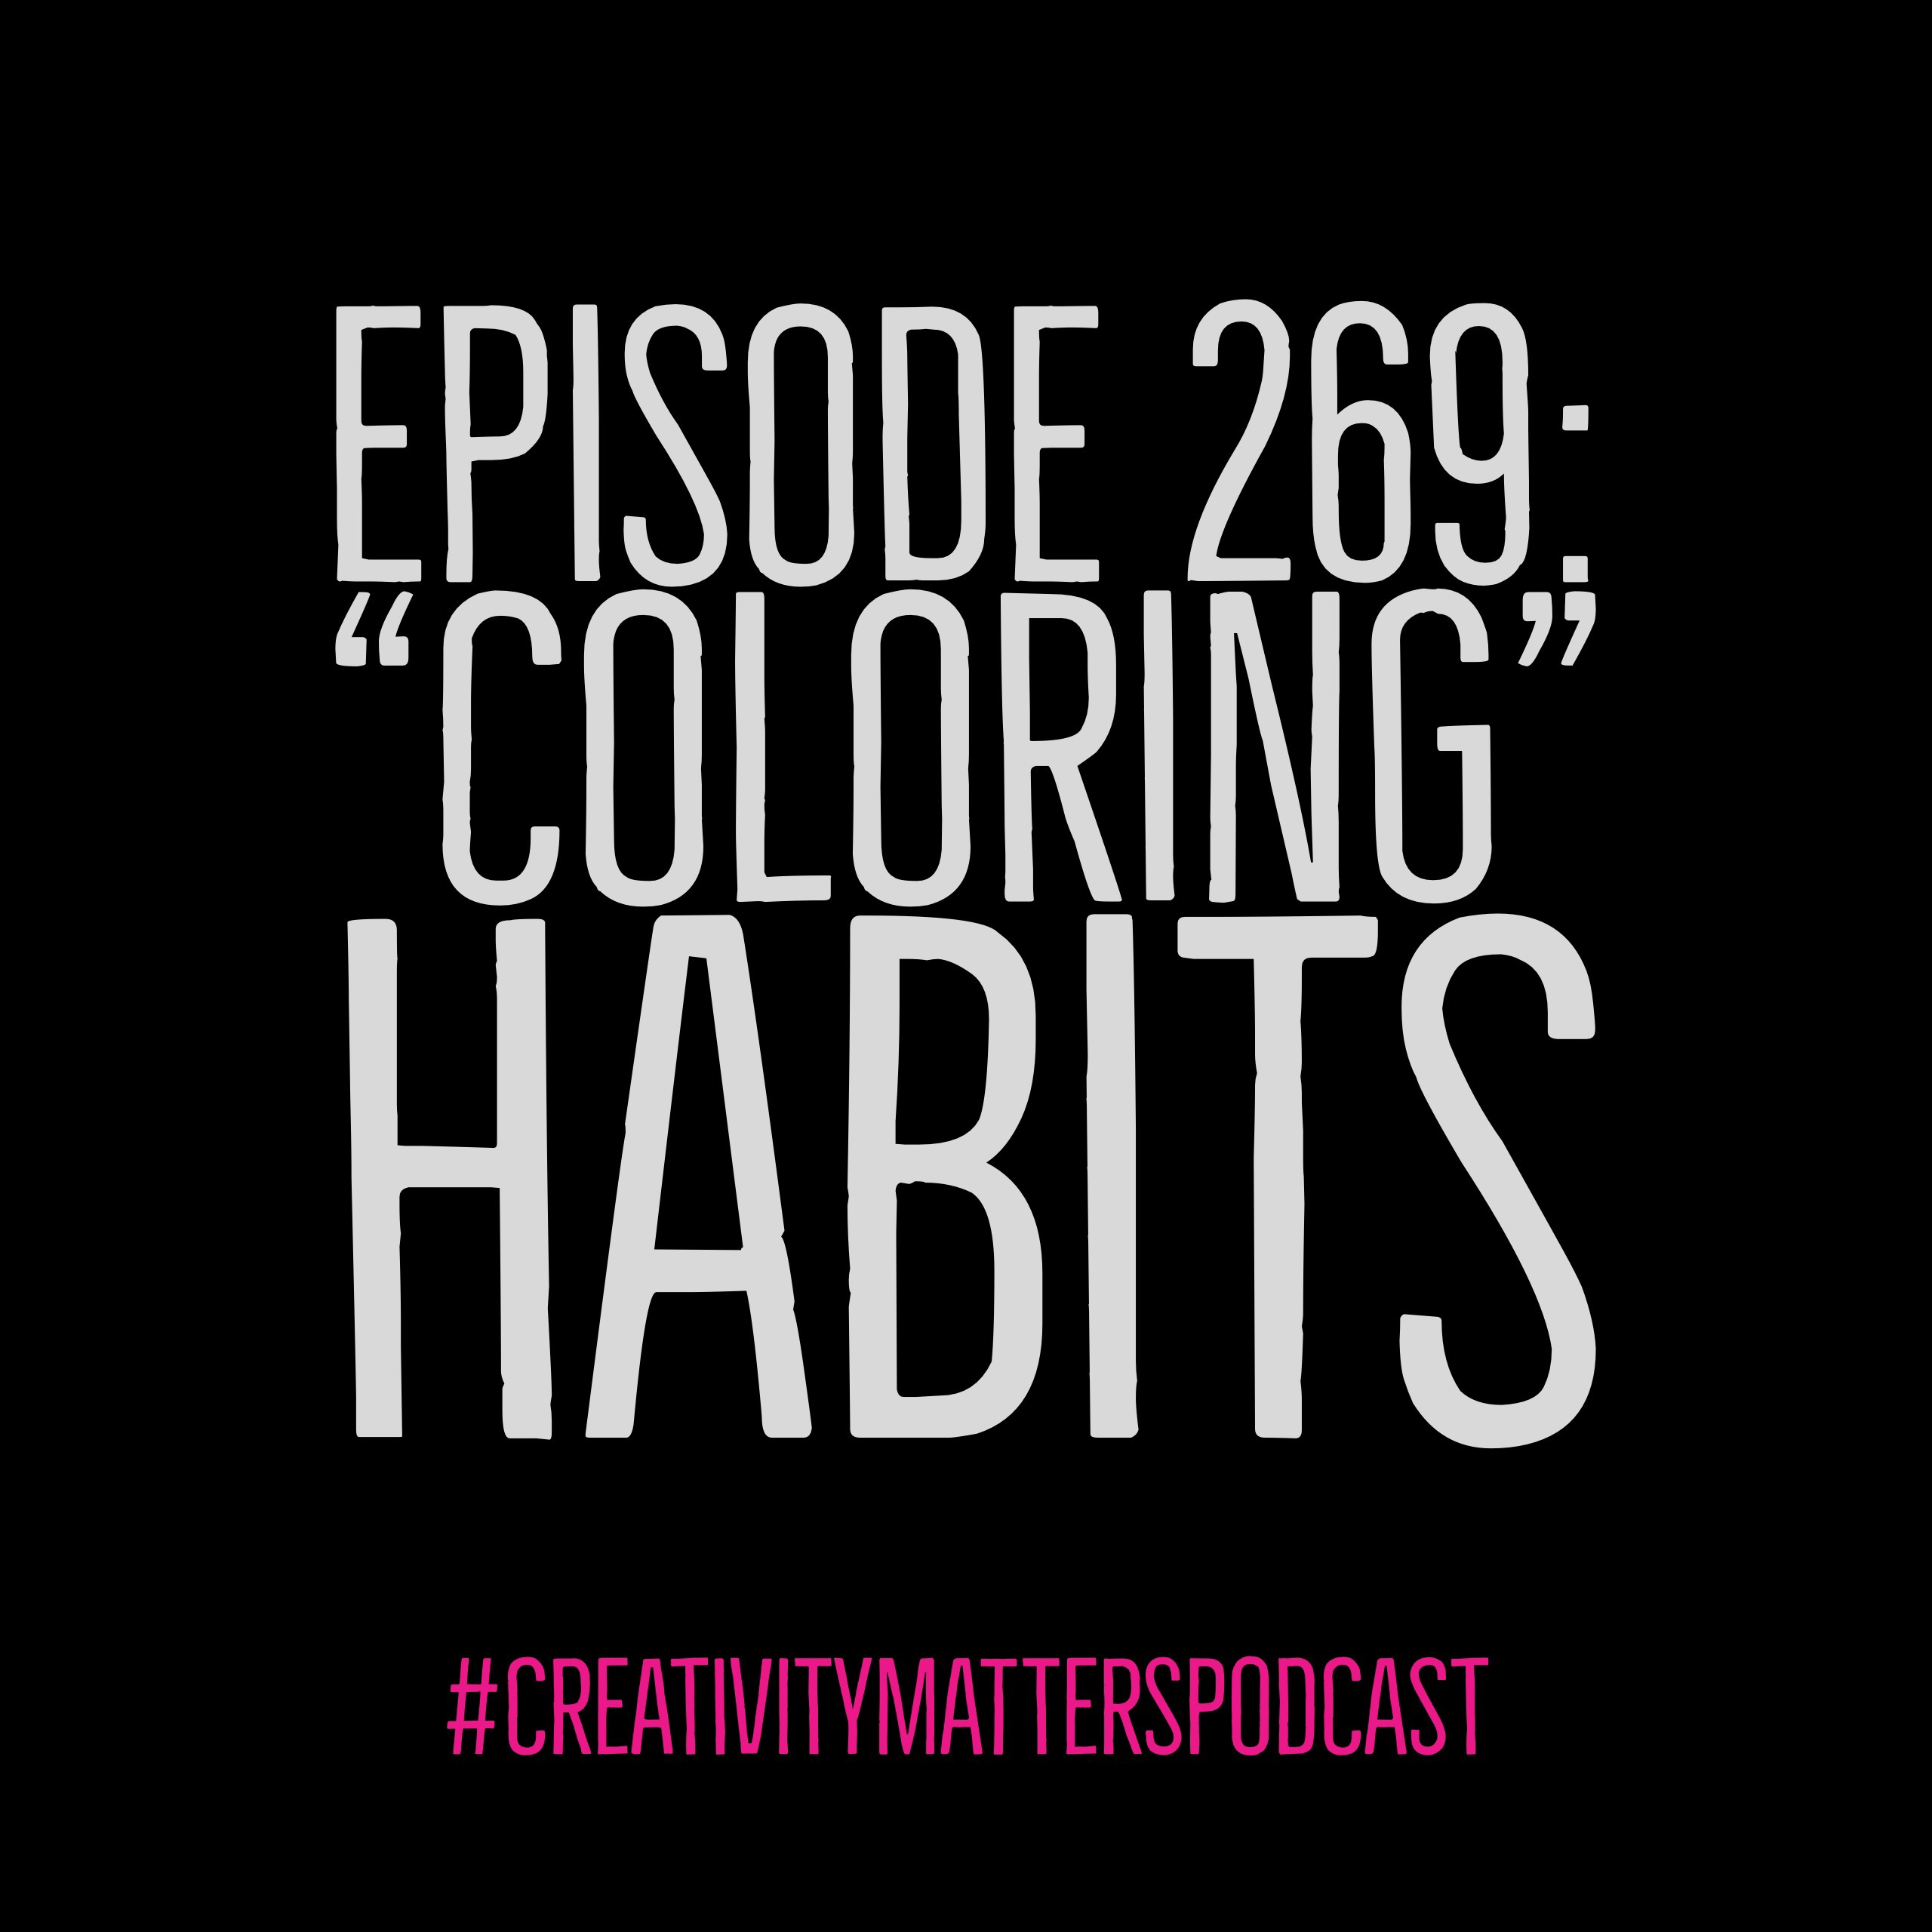 Episode 269: Coloring Habits